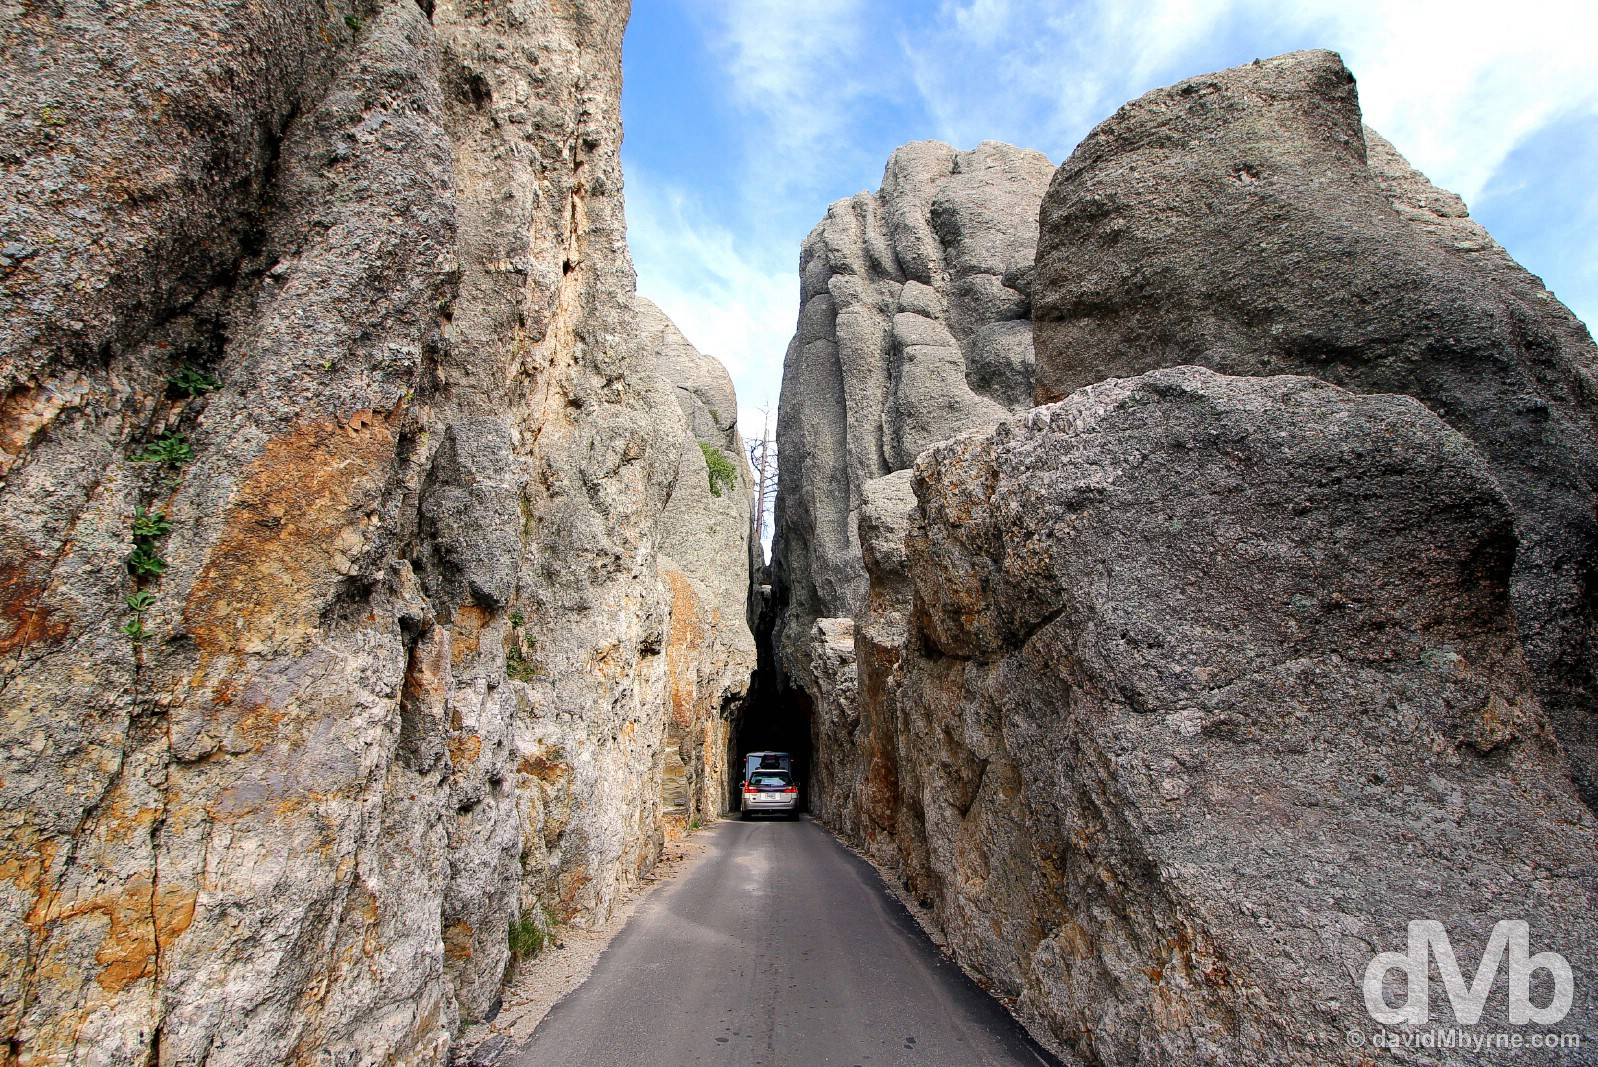 Tackling the Needles Eye Tunnel of the Needles Highway of Custer State Park, Black Hills, South Dakota. September 2, 2016.